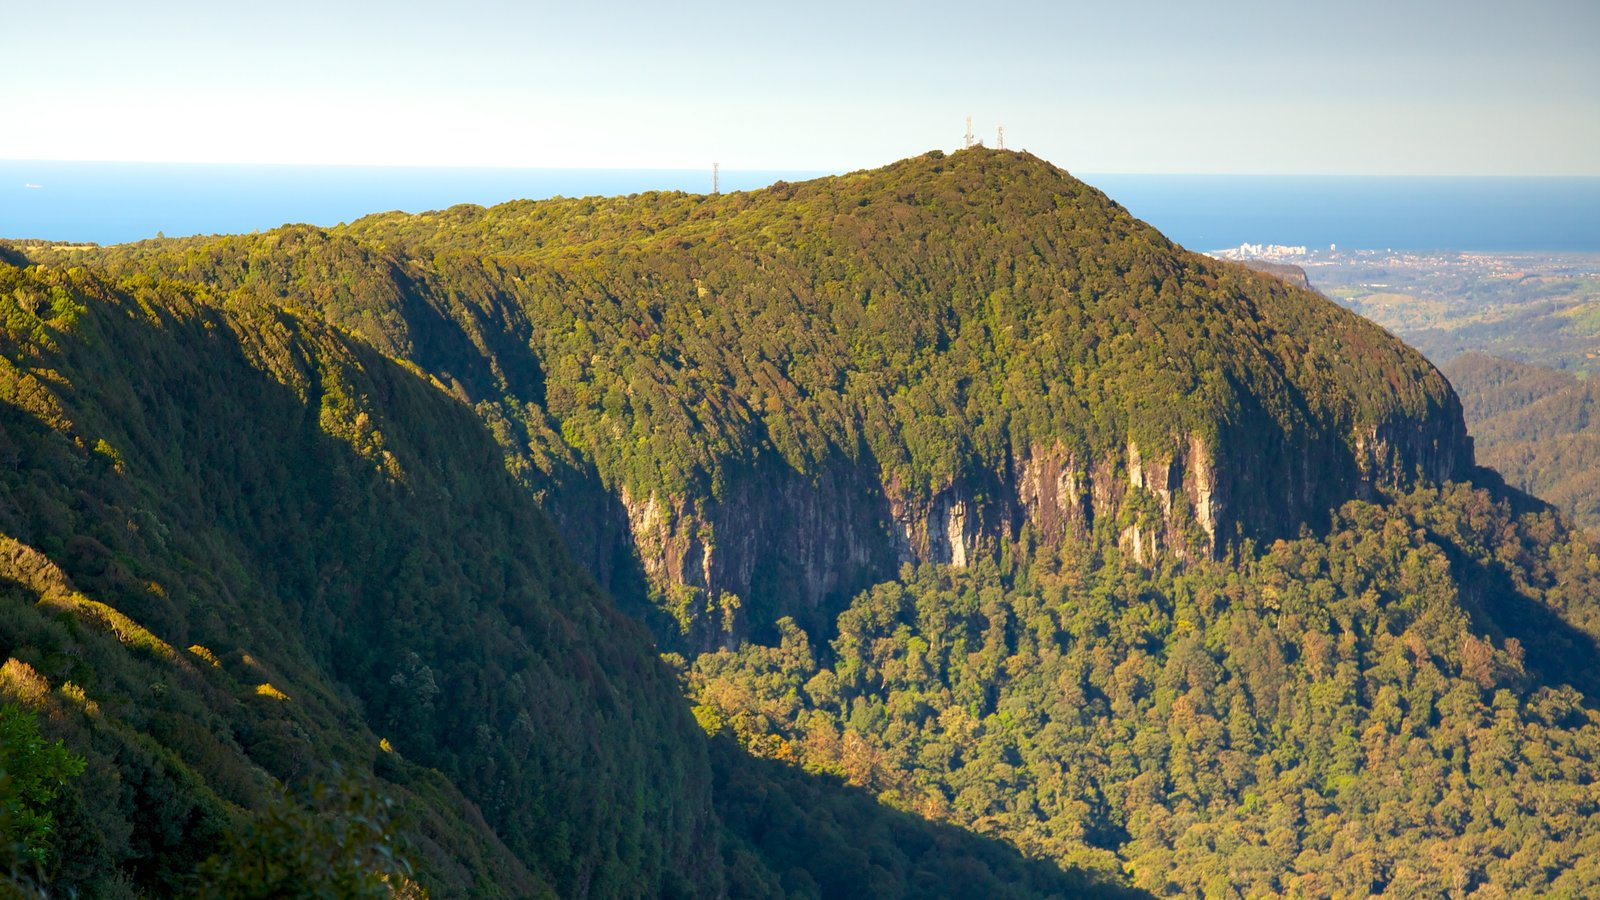 Springbrook National Park which includes landscape views and forest scenes